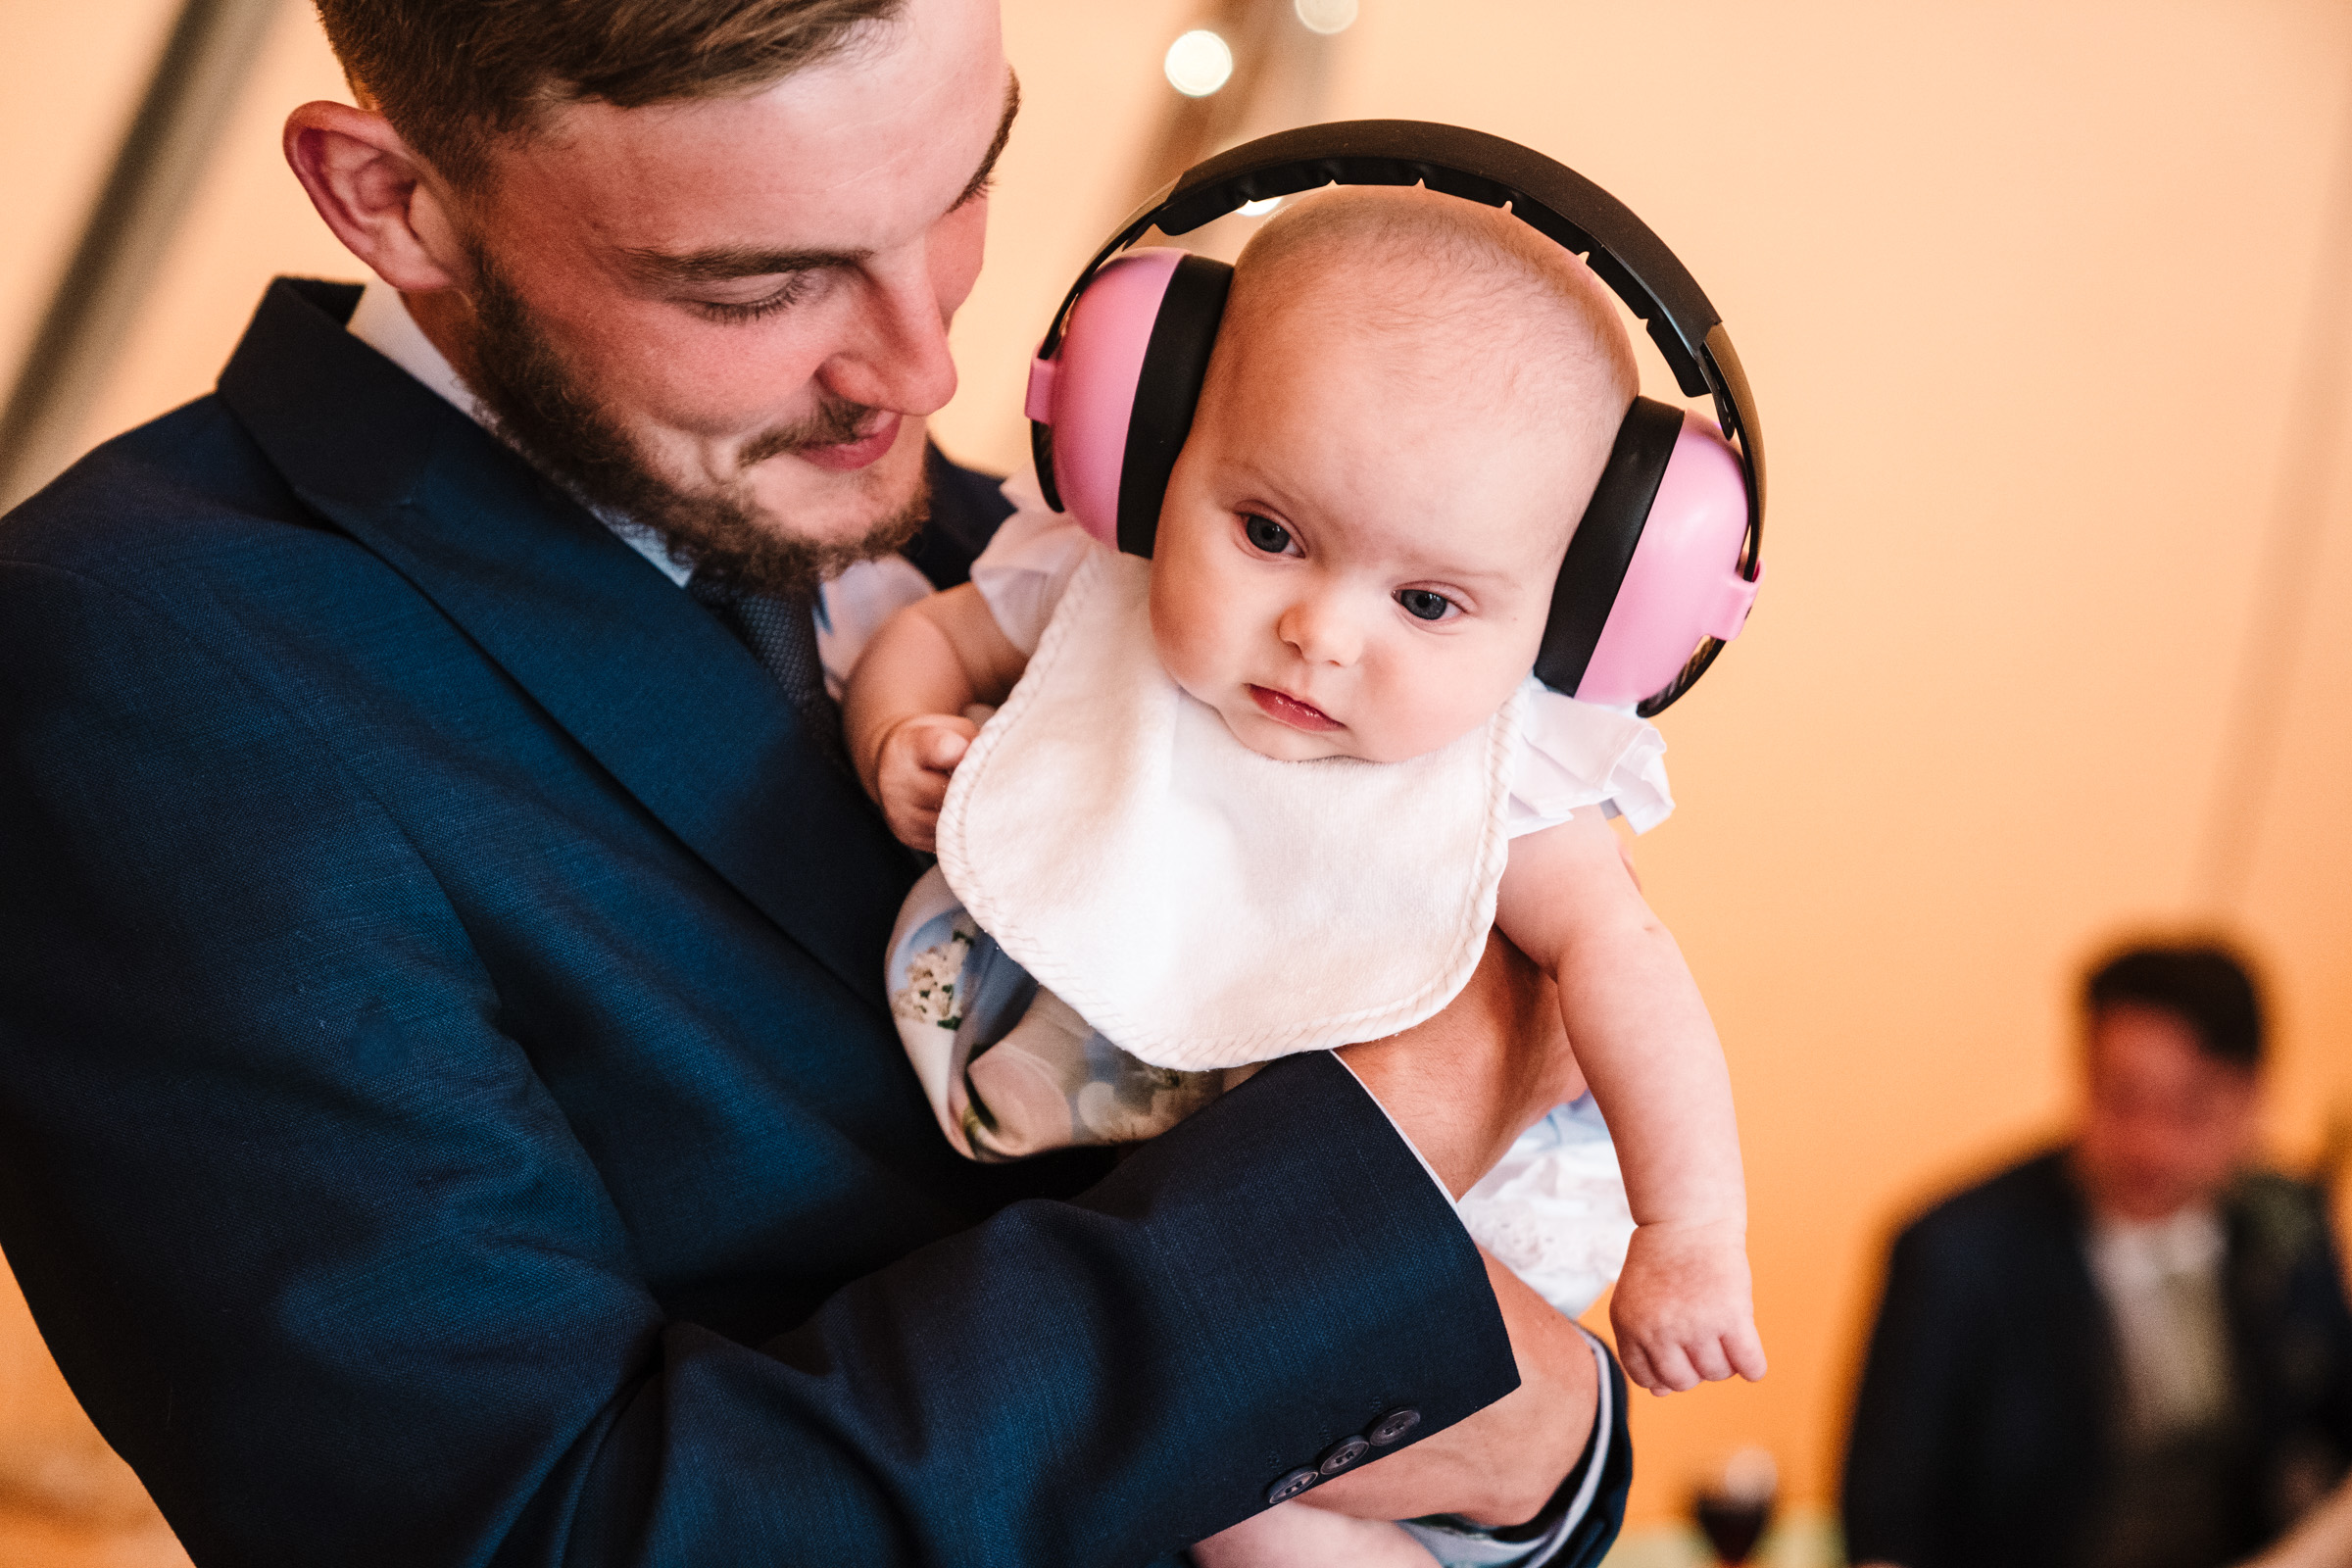 baby wearing ear defenders at a wedding